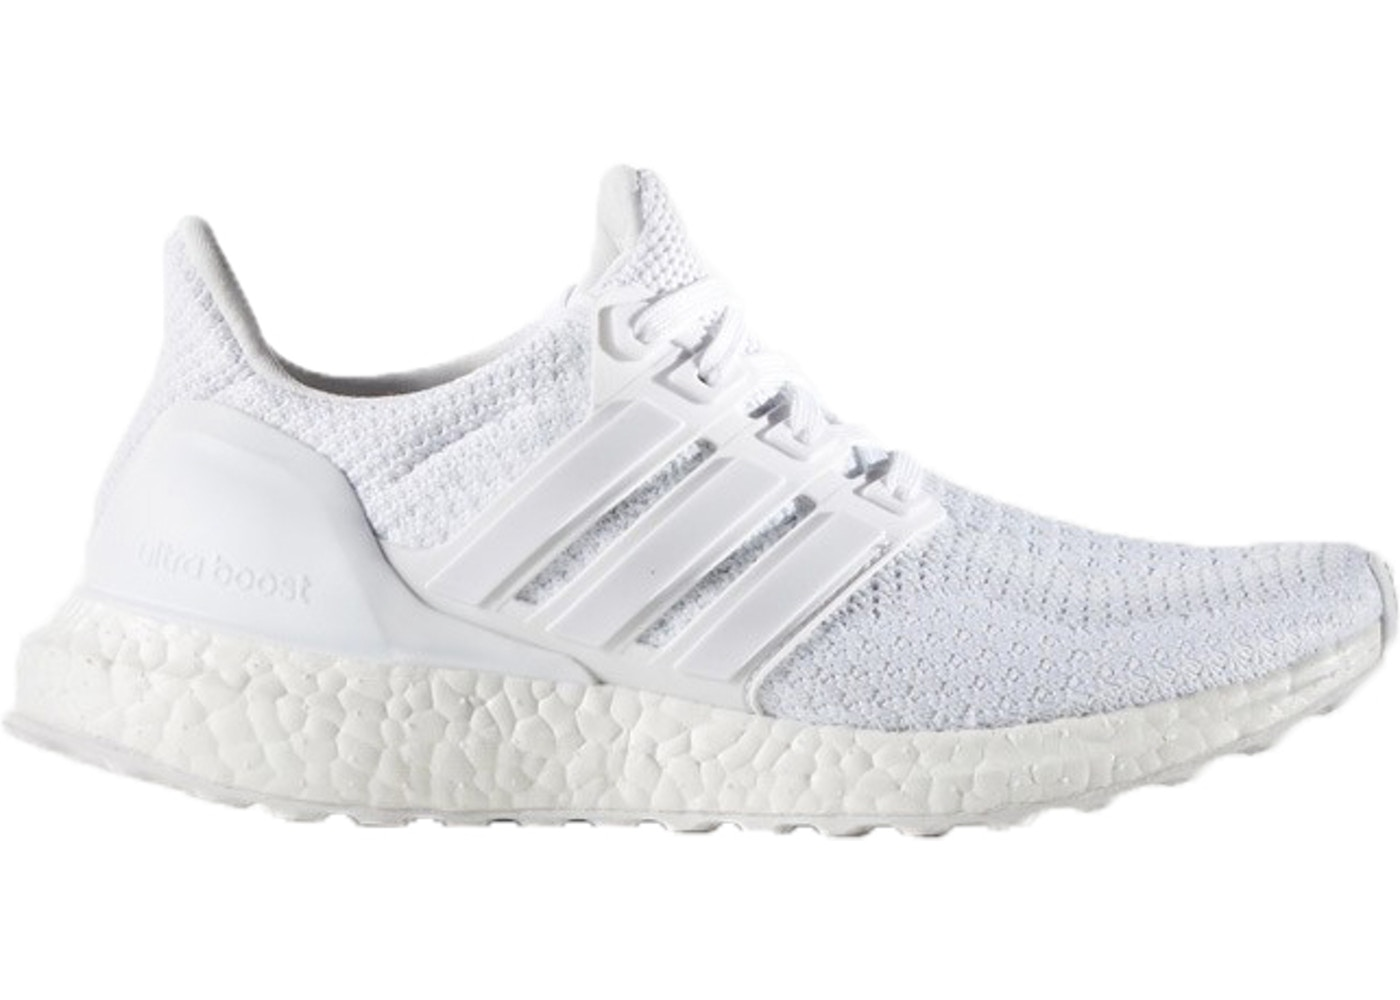 adidas Ultra Boost 2.0 Triple White (GS) - BA9274 71f75d3f1